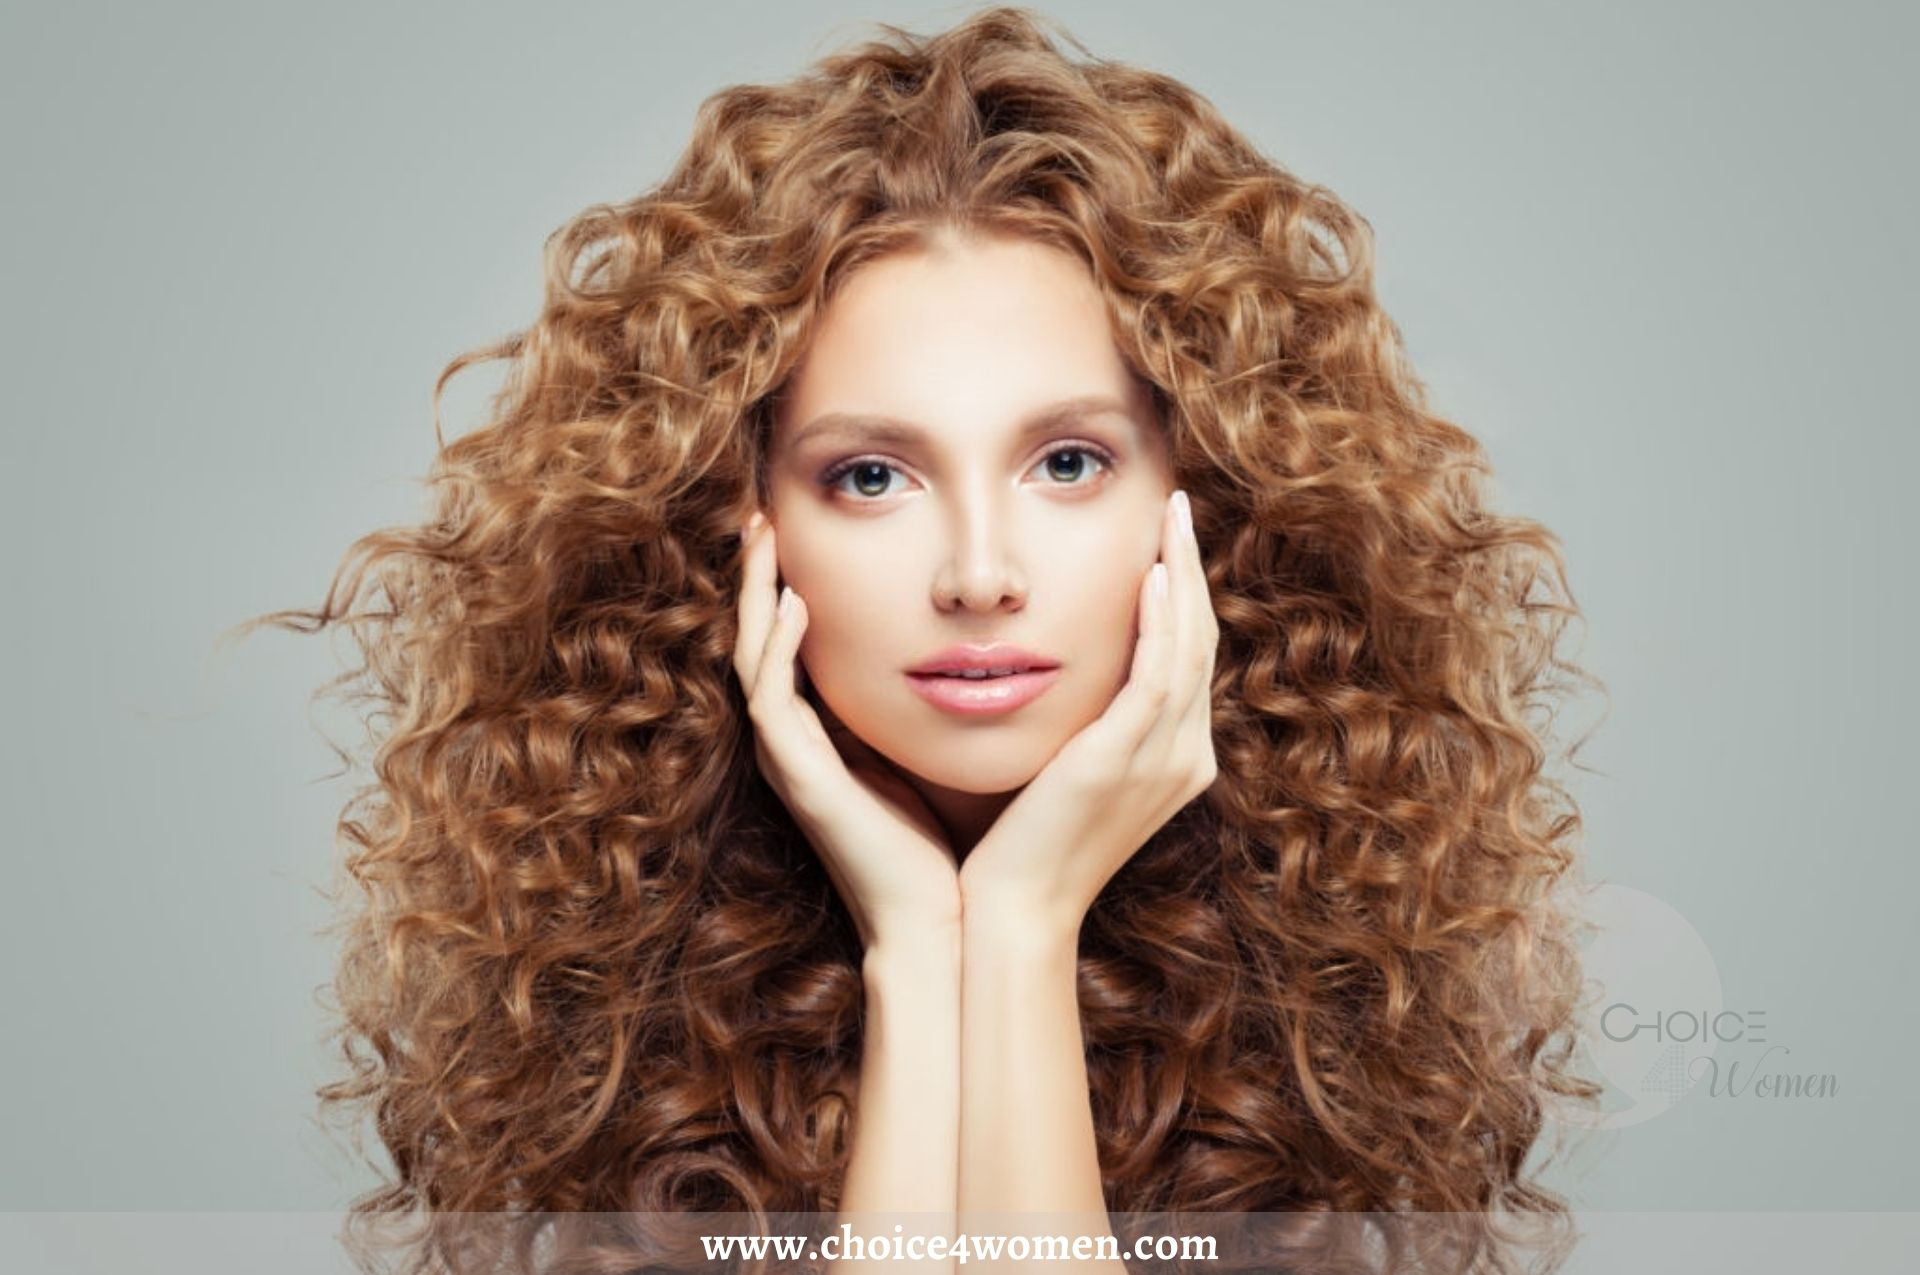 22 Glamorous Curly Hairstyles for Women To Try This Year